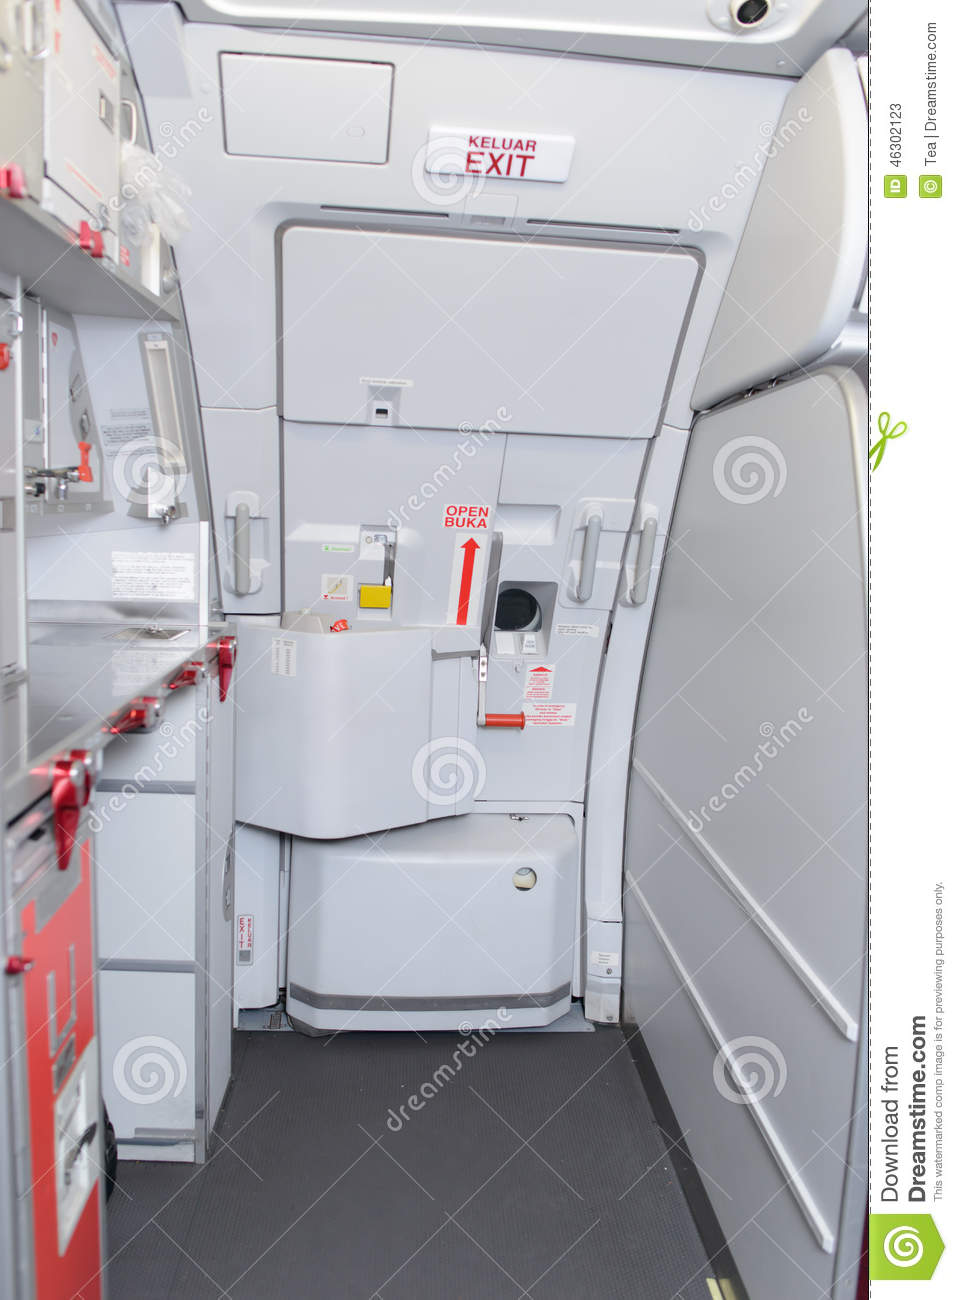 cost of personal helicopter with Stock Photo Jet Aircraft Interior Door Low Cost Image46302123 on Stock Photo Jet Aircraft Interior Door Low Cost Image46302123 moreover Giant Scale Rc Airplanes in addition 3056 also raptor Aircraft furthermore The most expensive private jet.